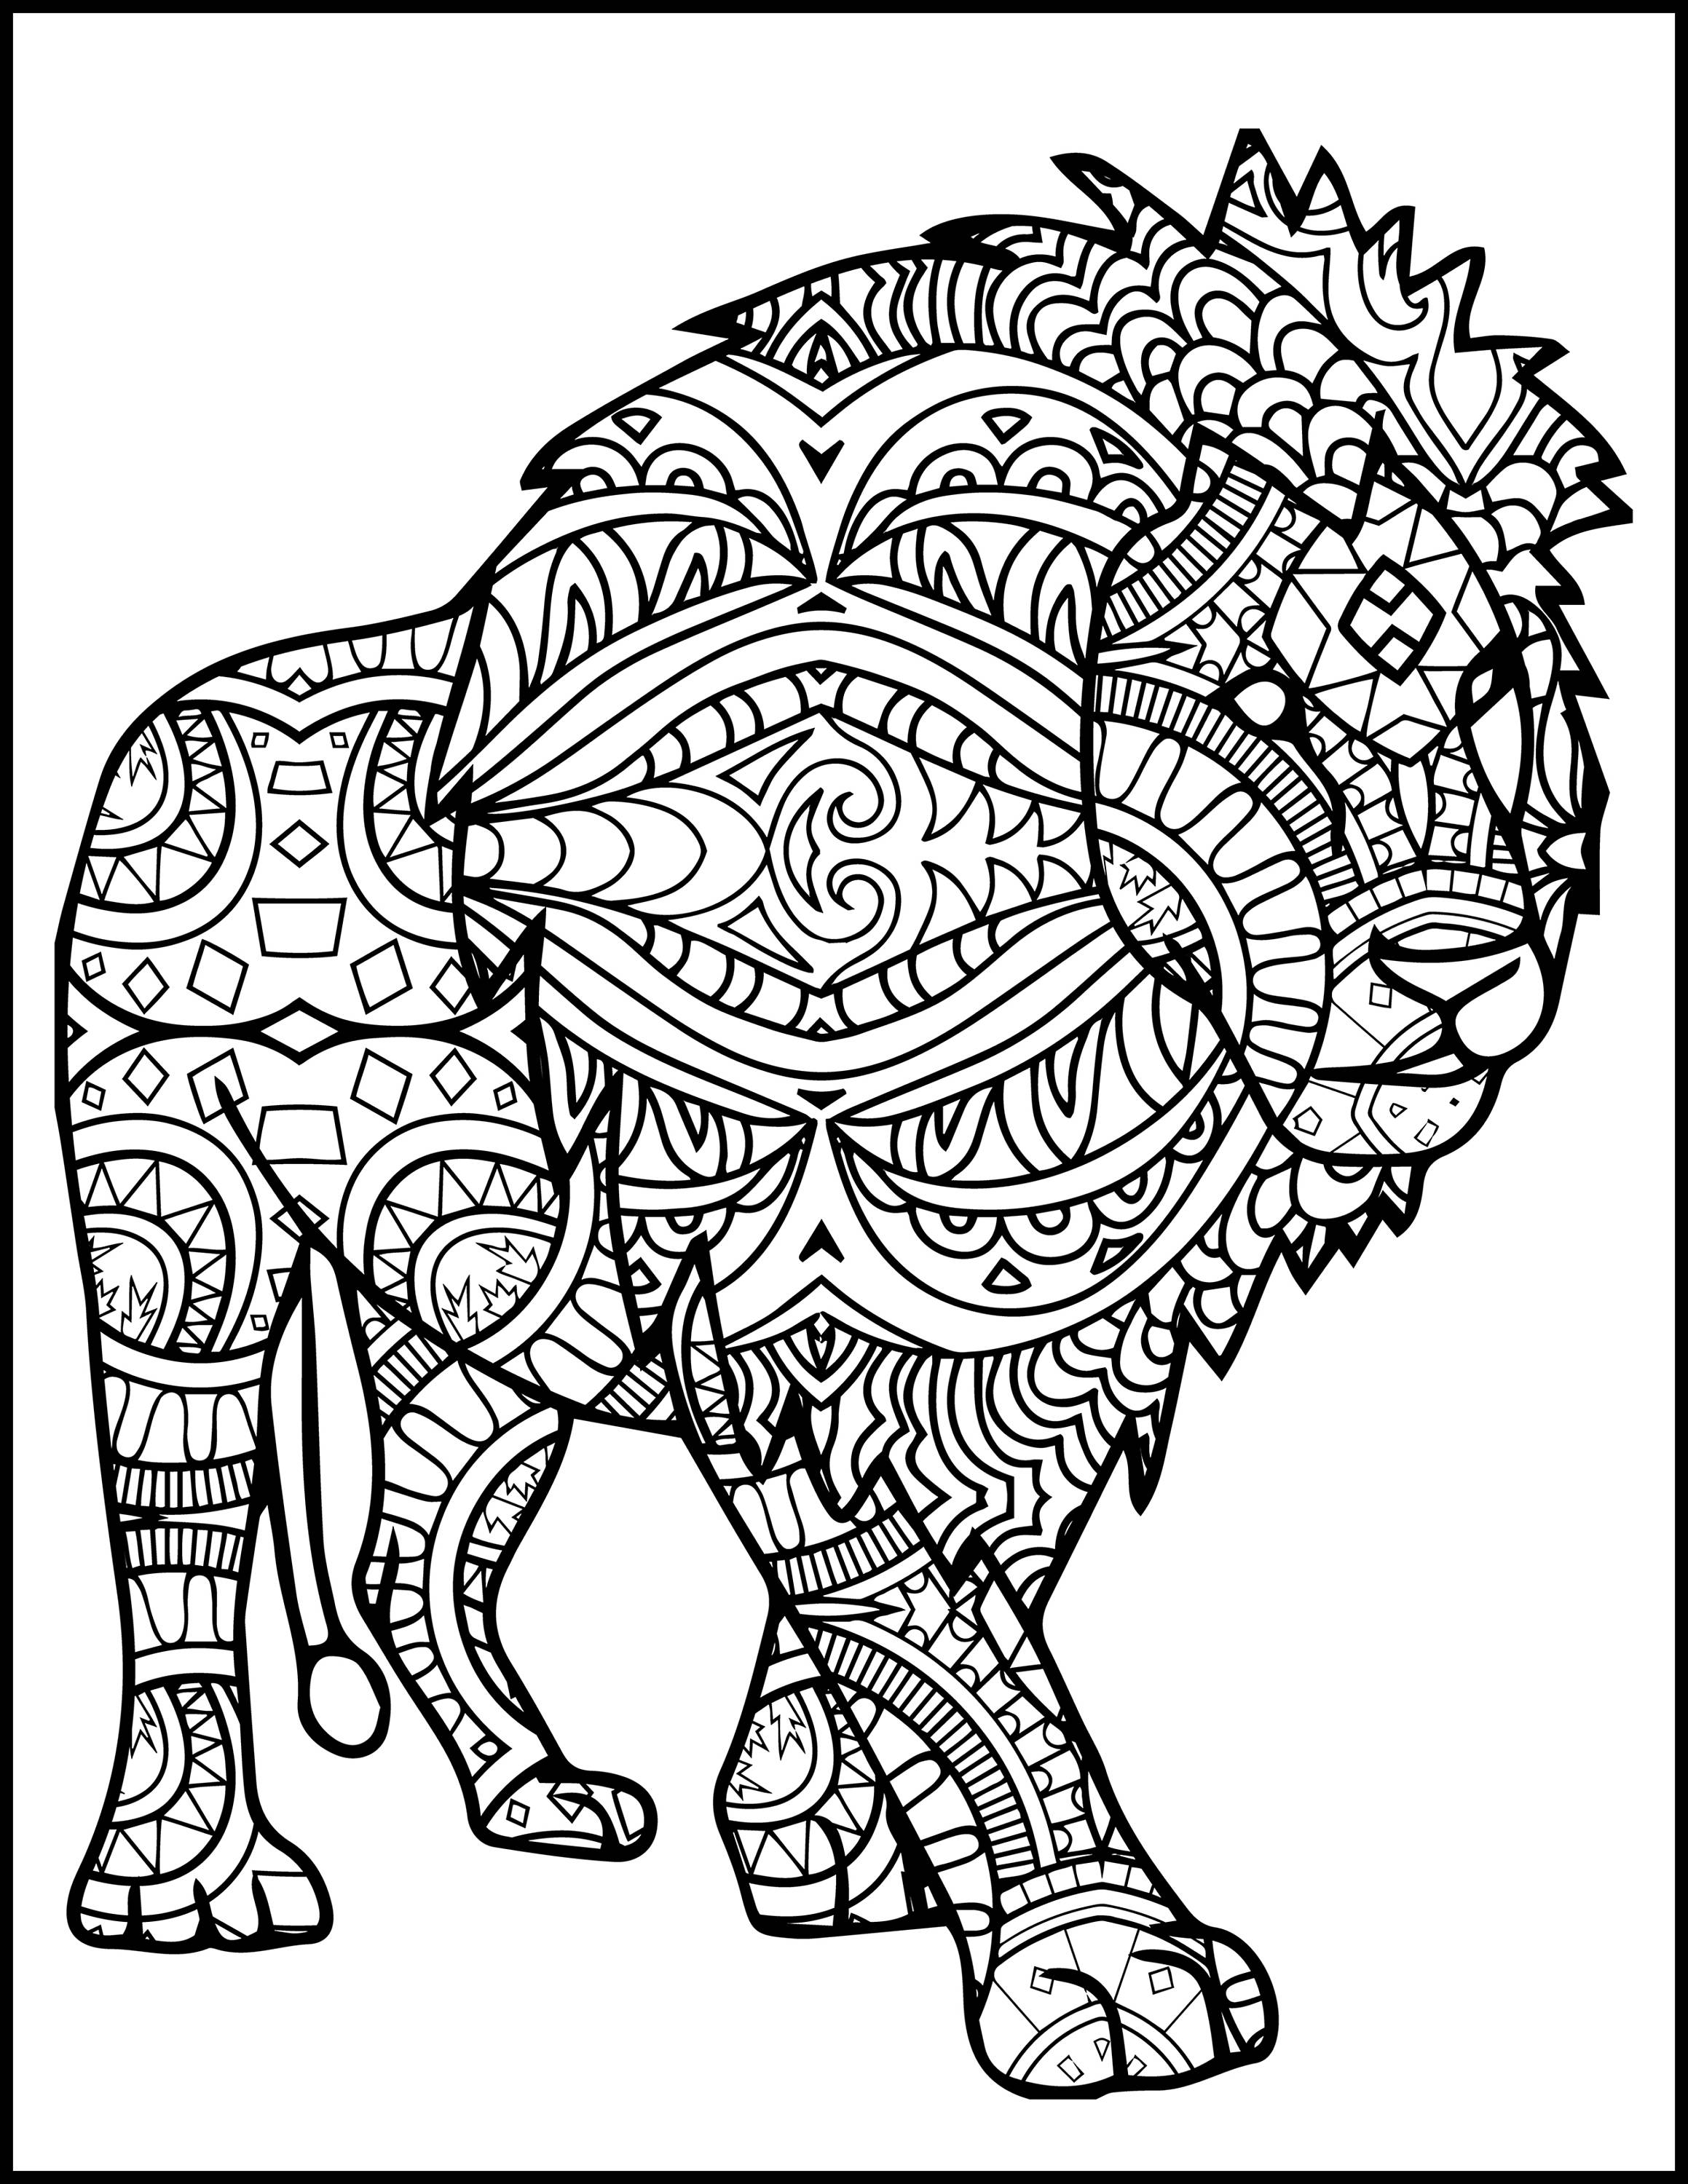 coloring page of a lion lion coloring pages to download and print for free of a coloring page lion